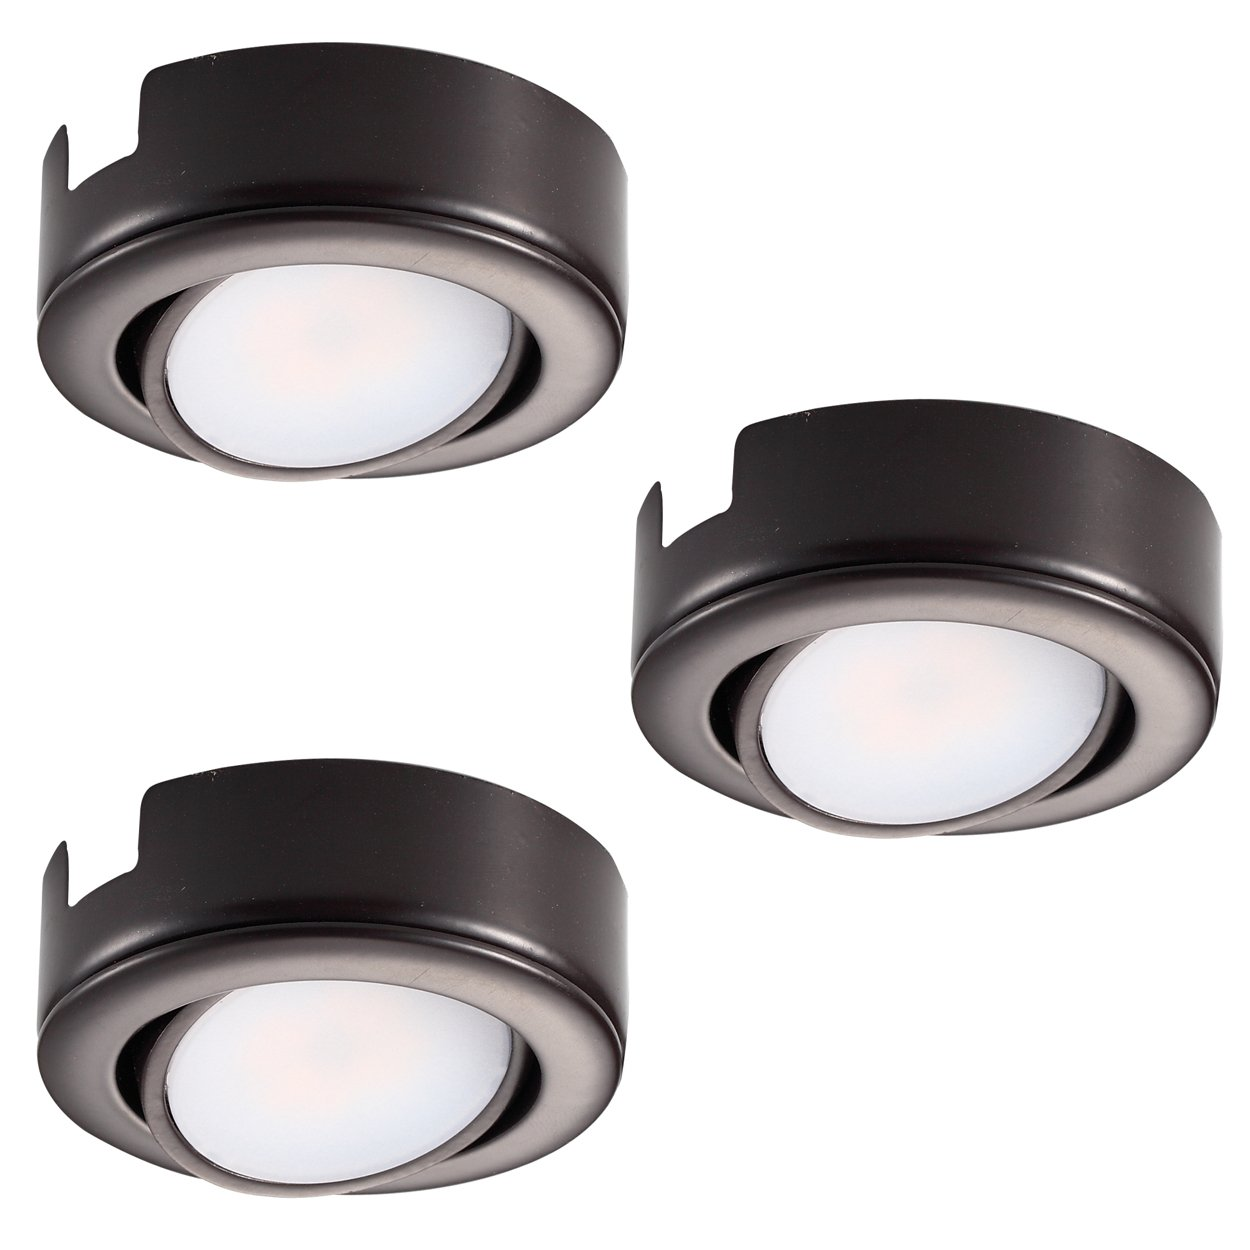 Getinlight Dimmable And Swivel Led Puck Light Kit With Etl List Wiring New Closet Recessed Or Surface Mount Design Warm White 2700k Bronze Finish Pack Of 3